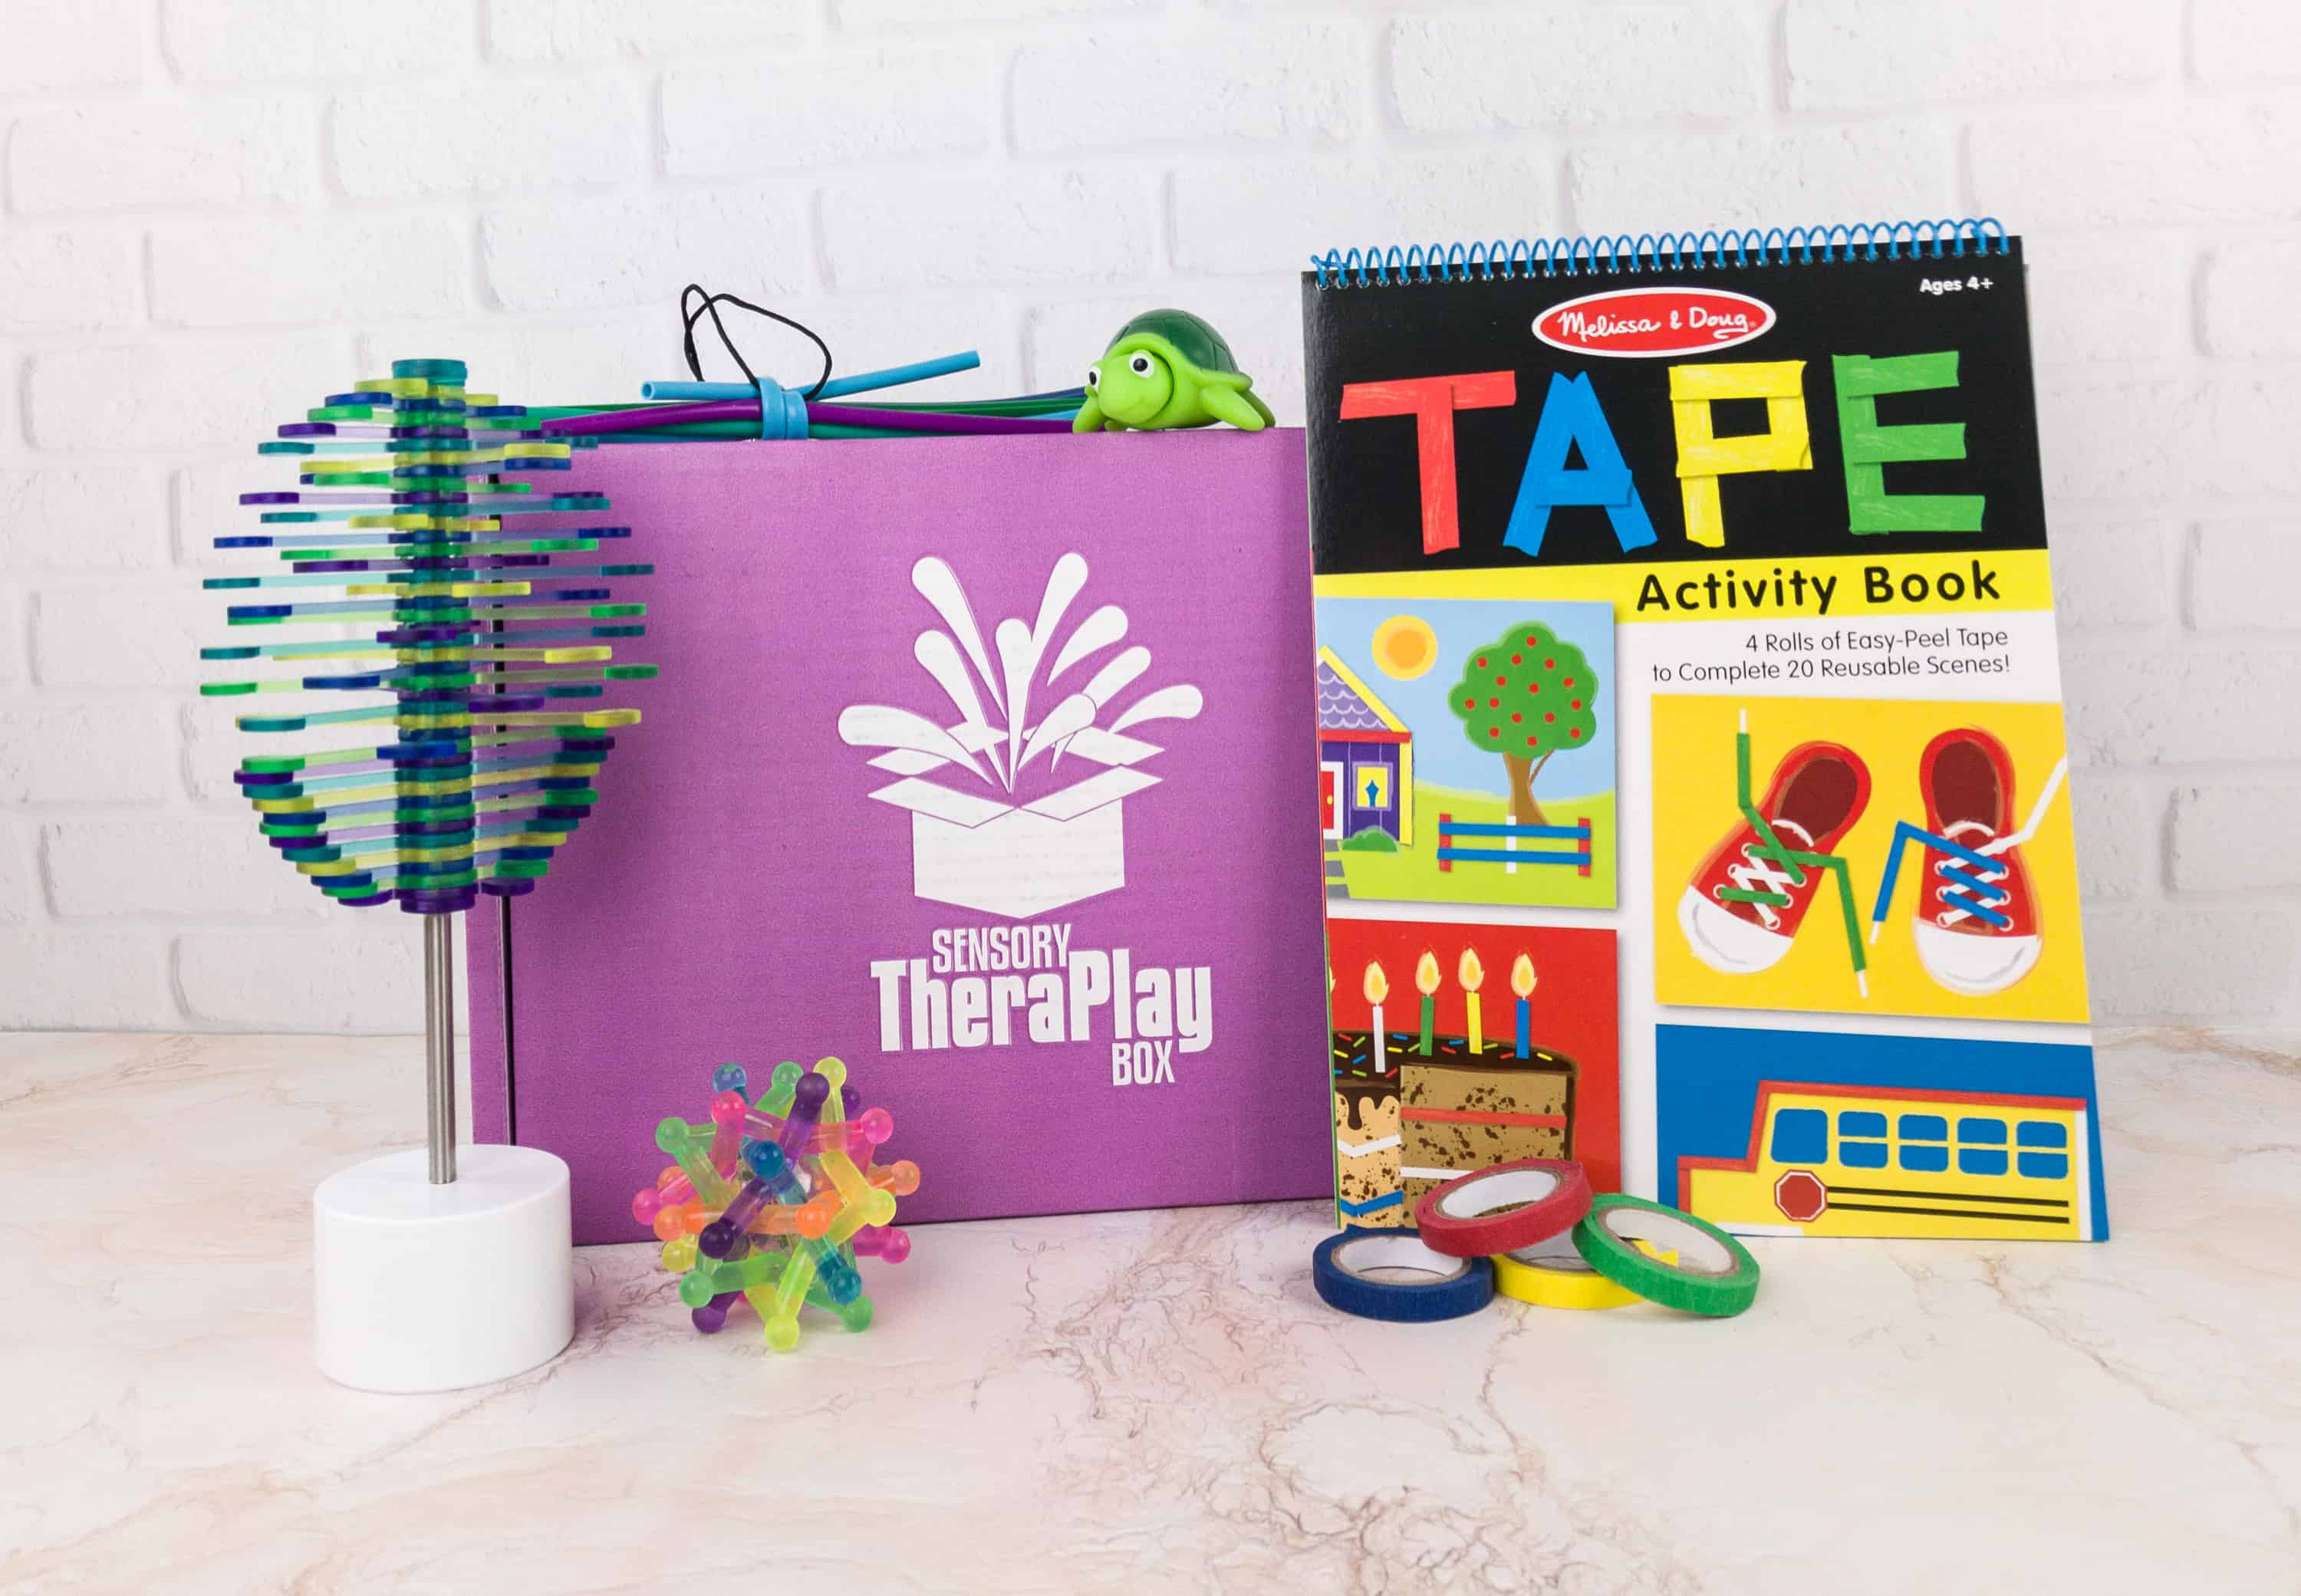 Sensory TheraPLAY Box December 2017 Subscription Box Review + Coupon